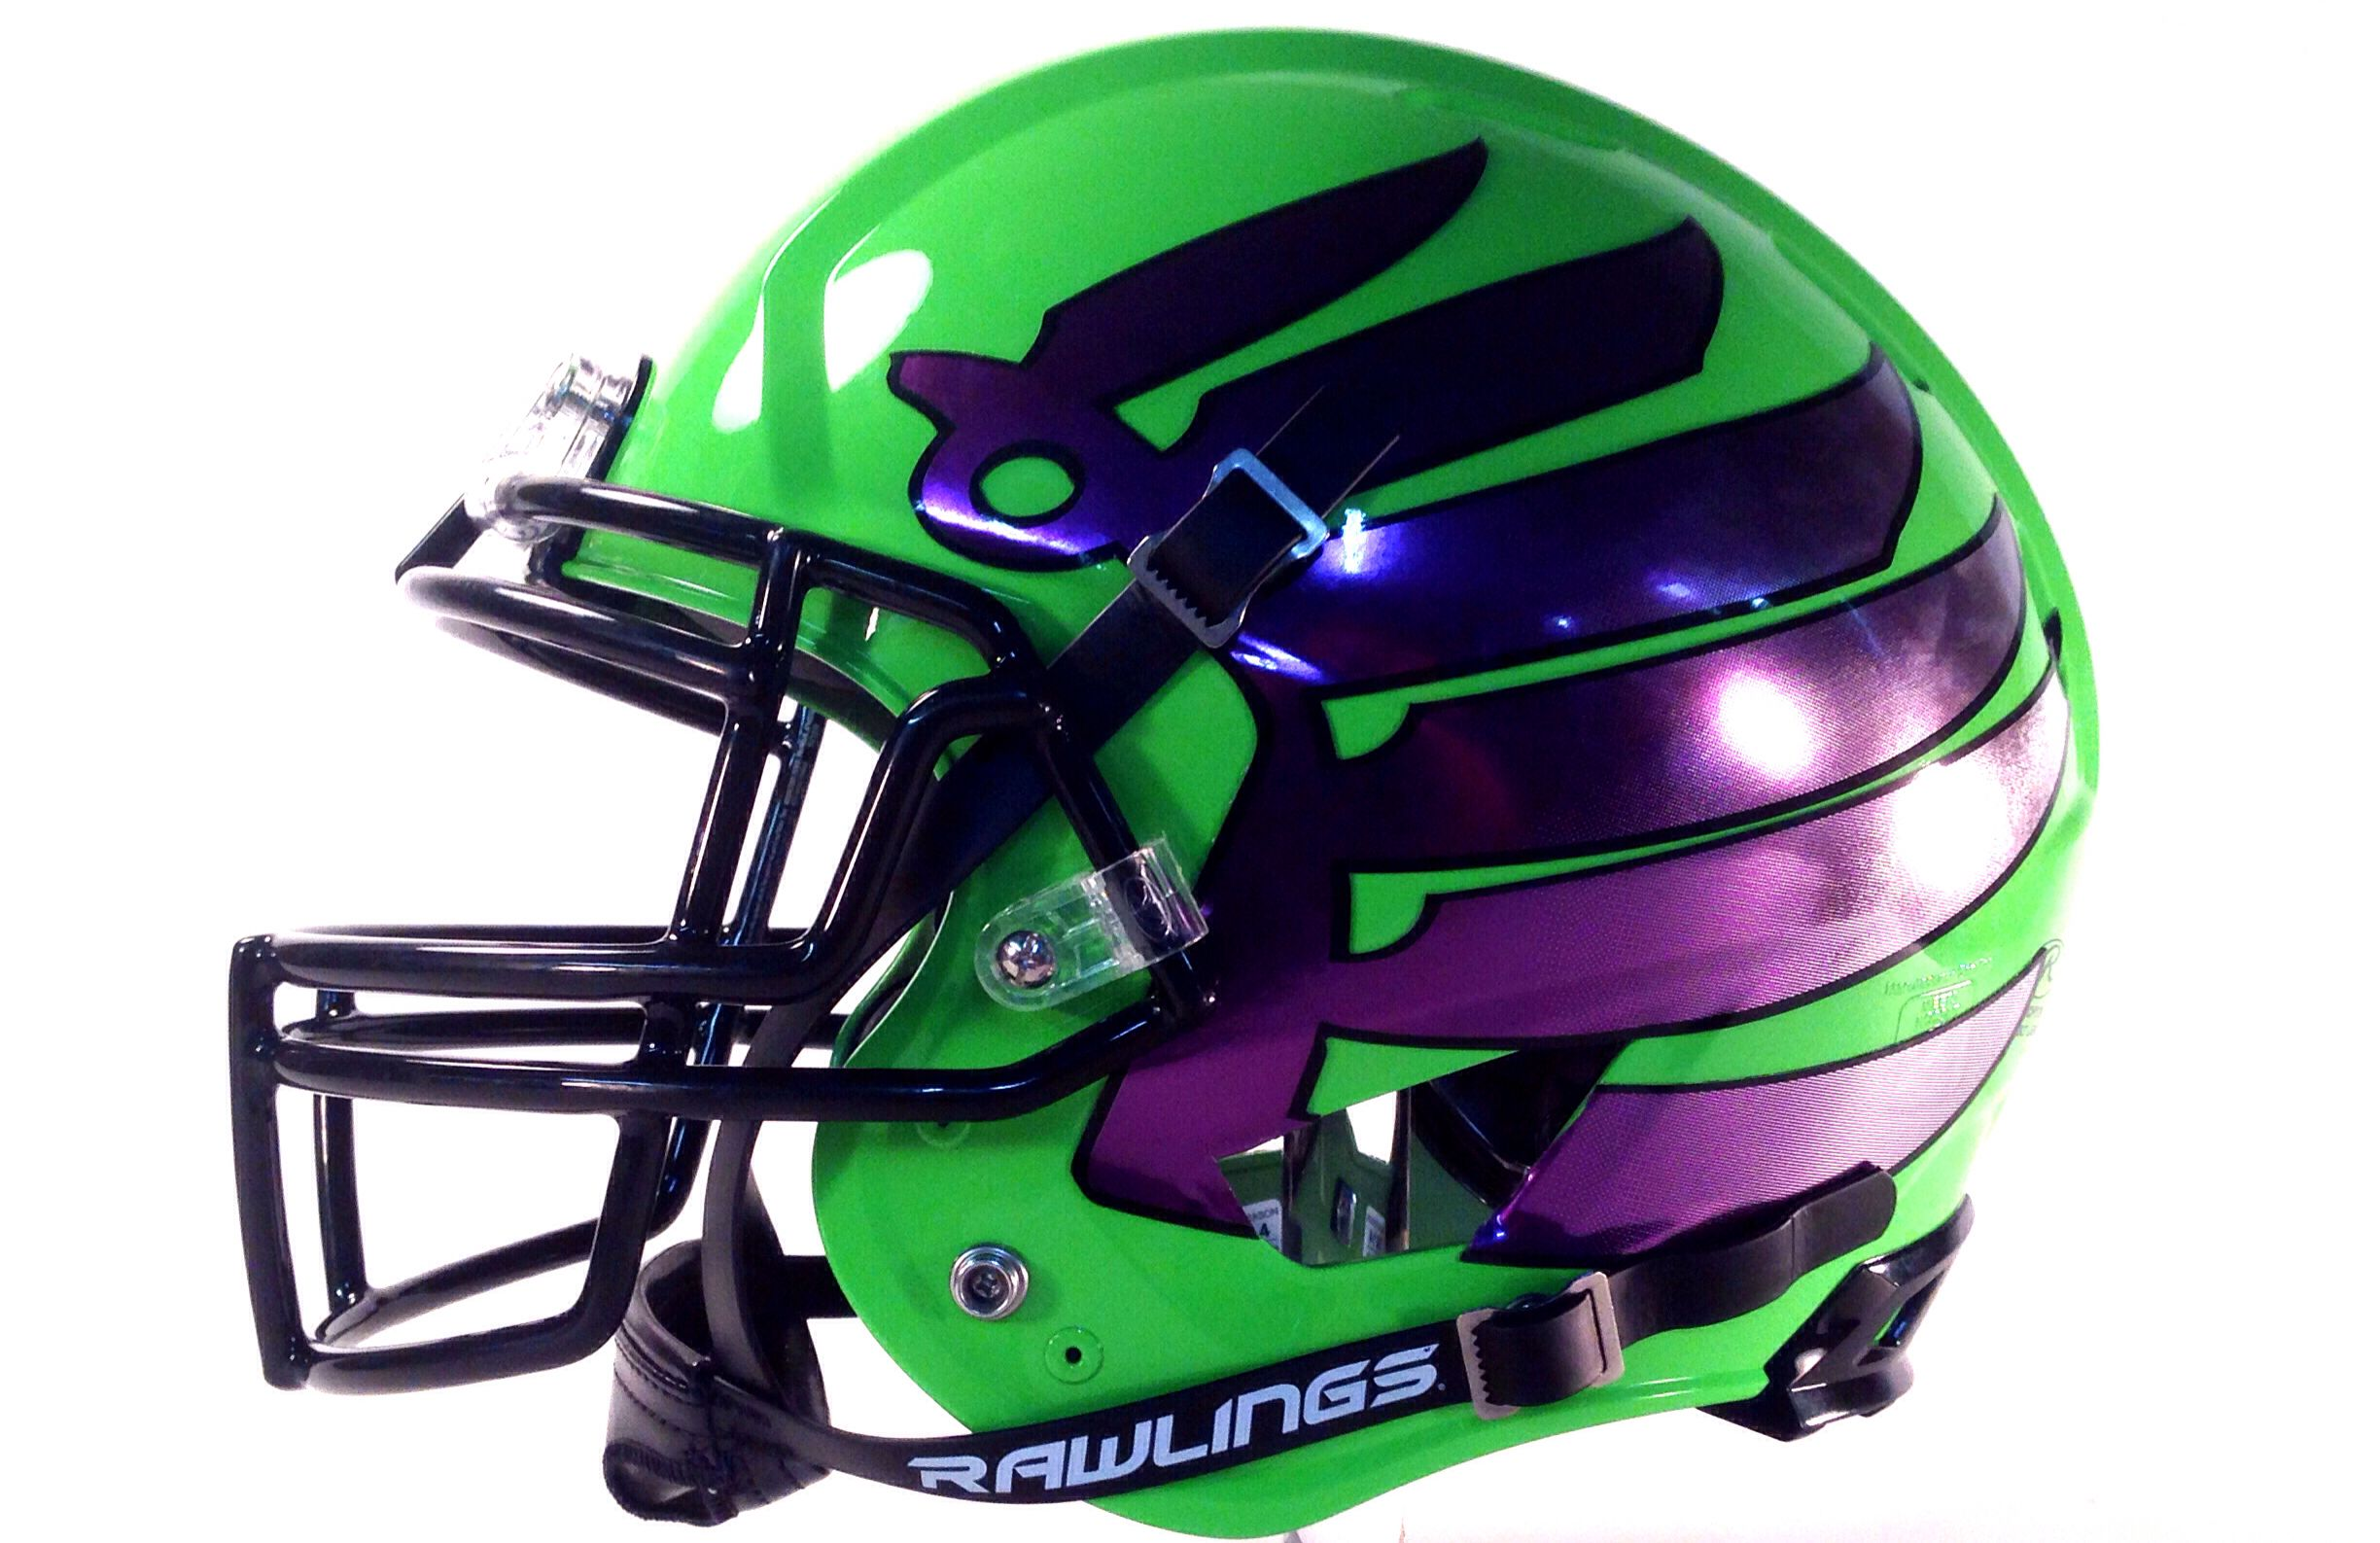 Finally had time to put football helmet decals on our new